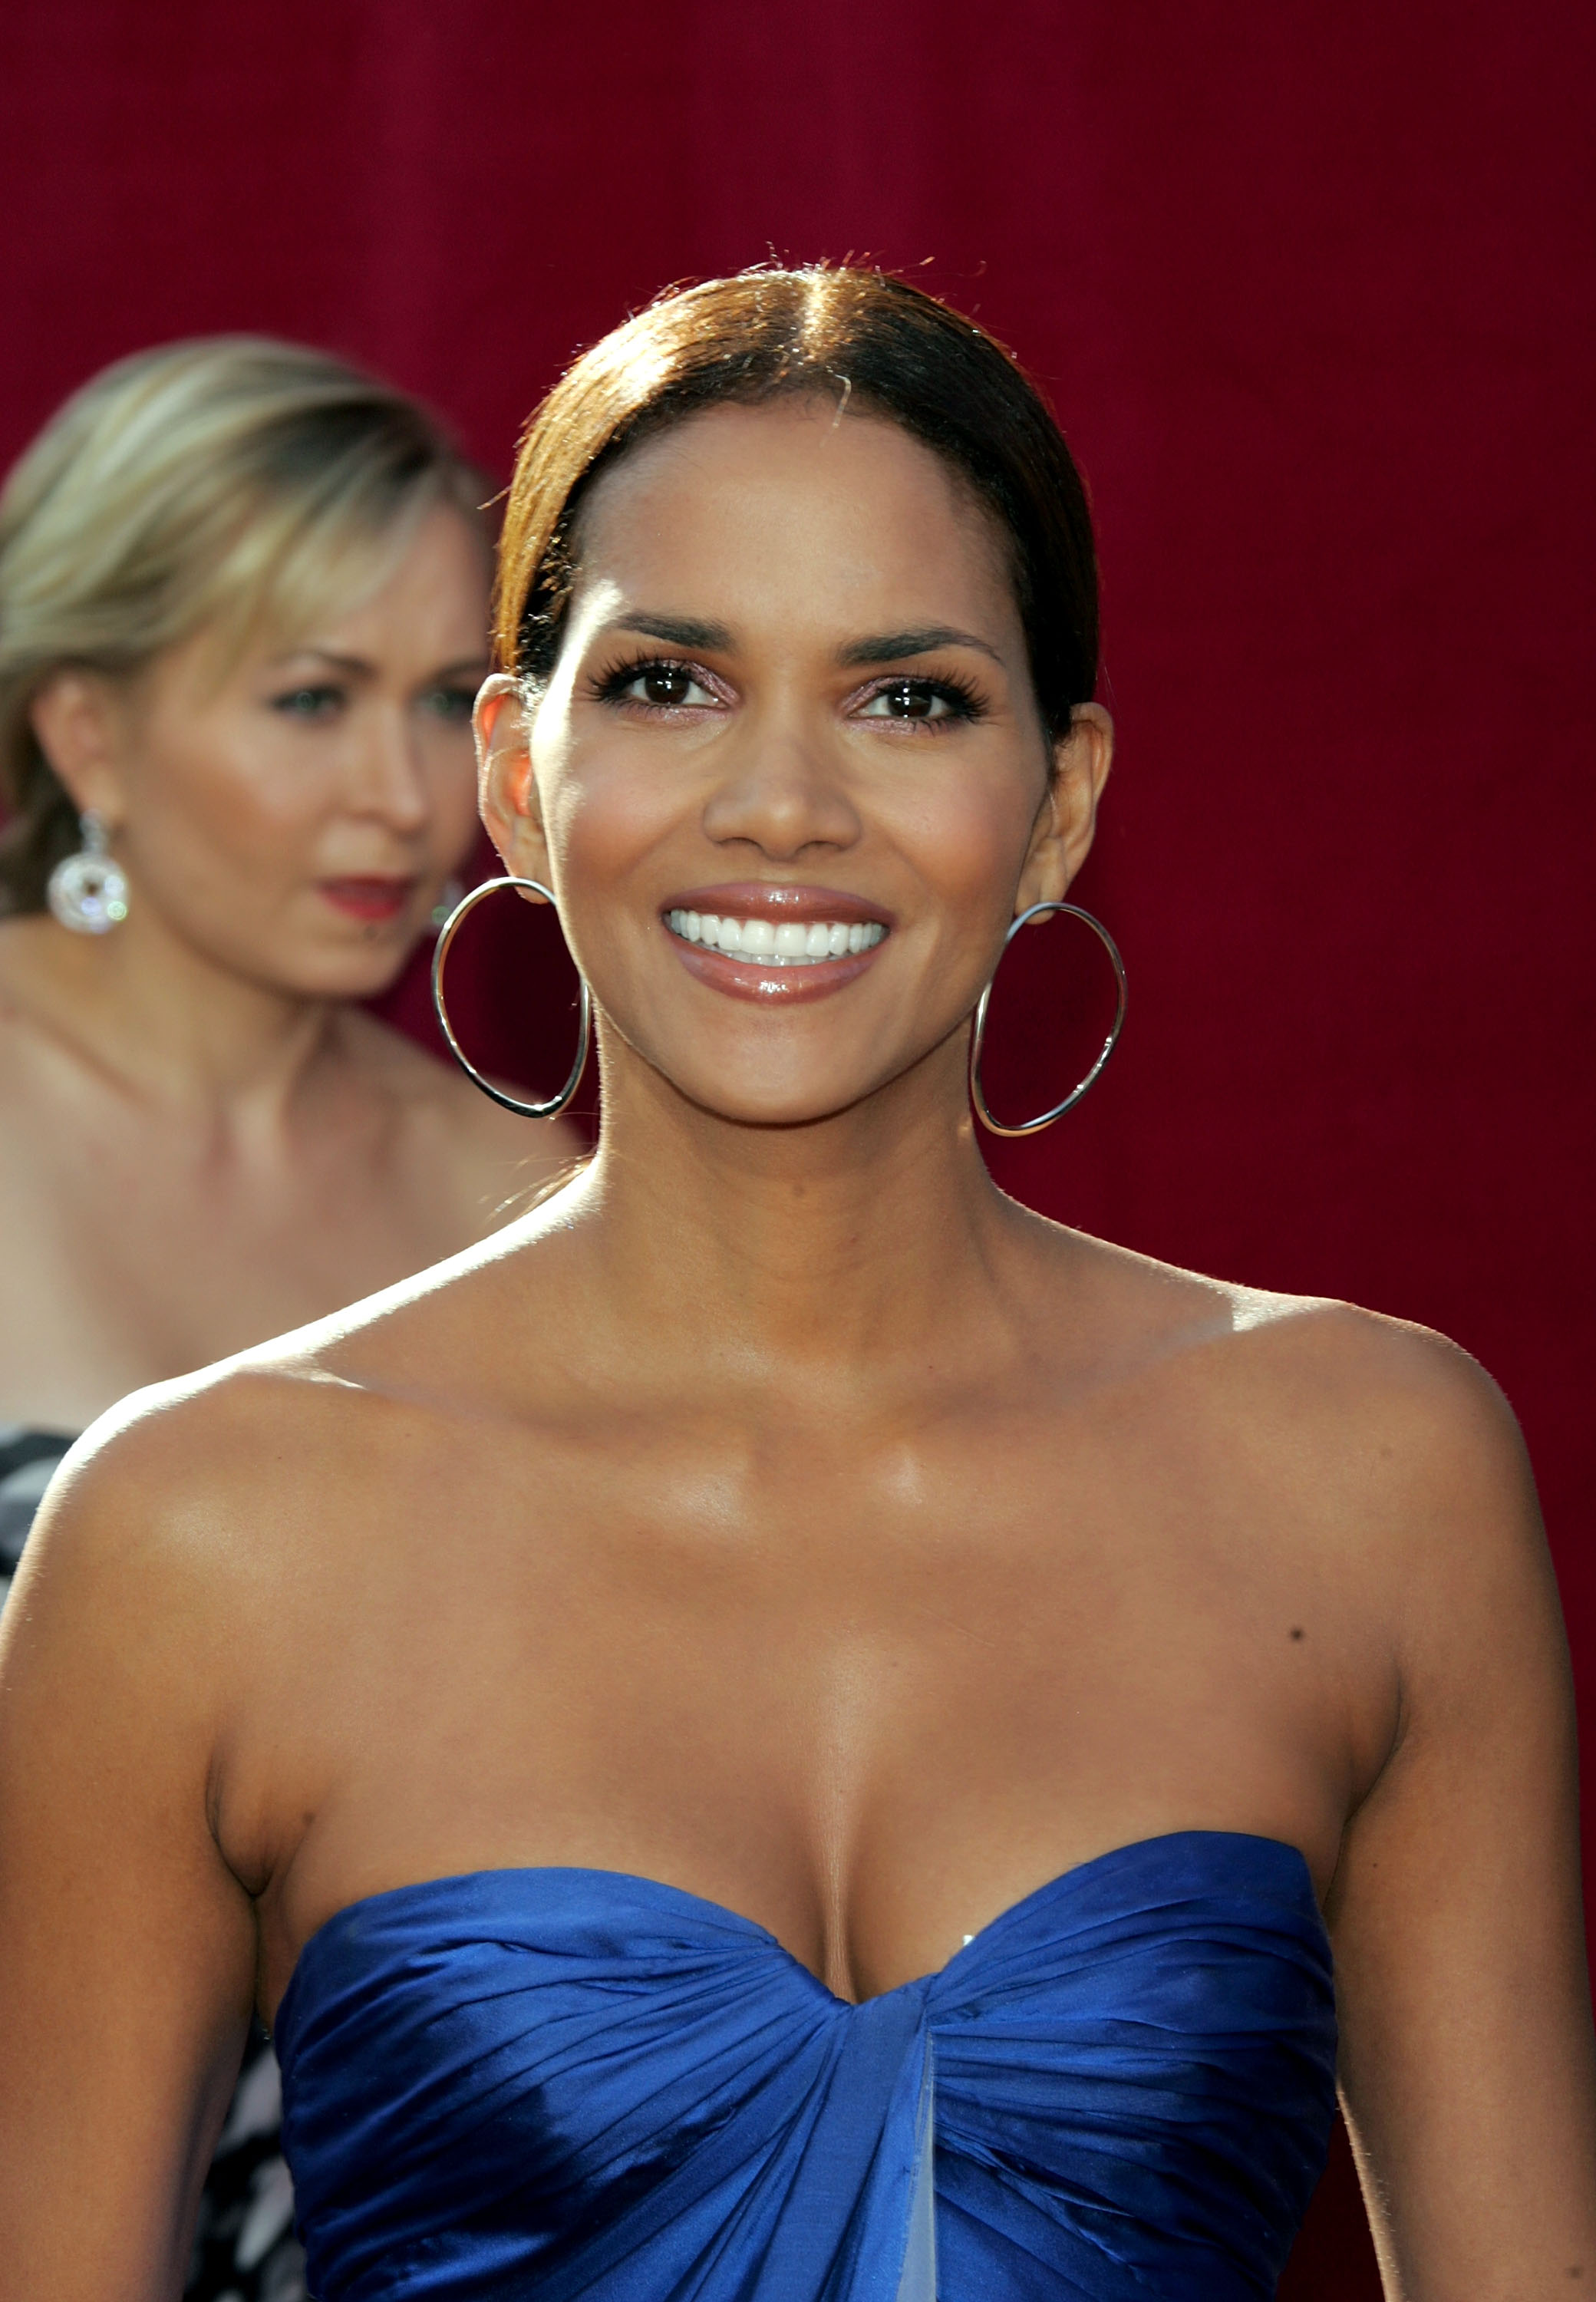 57th Annual Emmy Awards - Arrivals